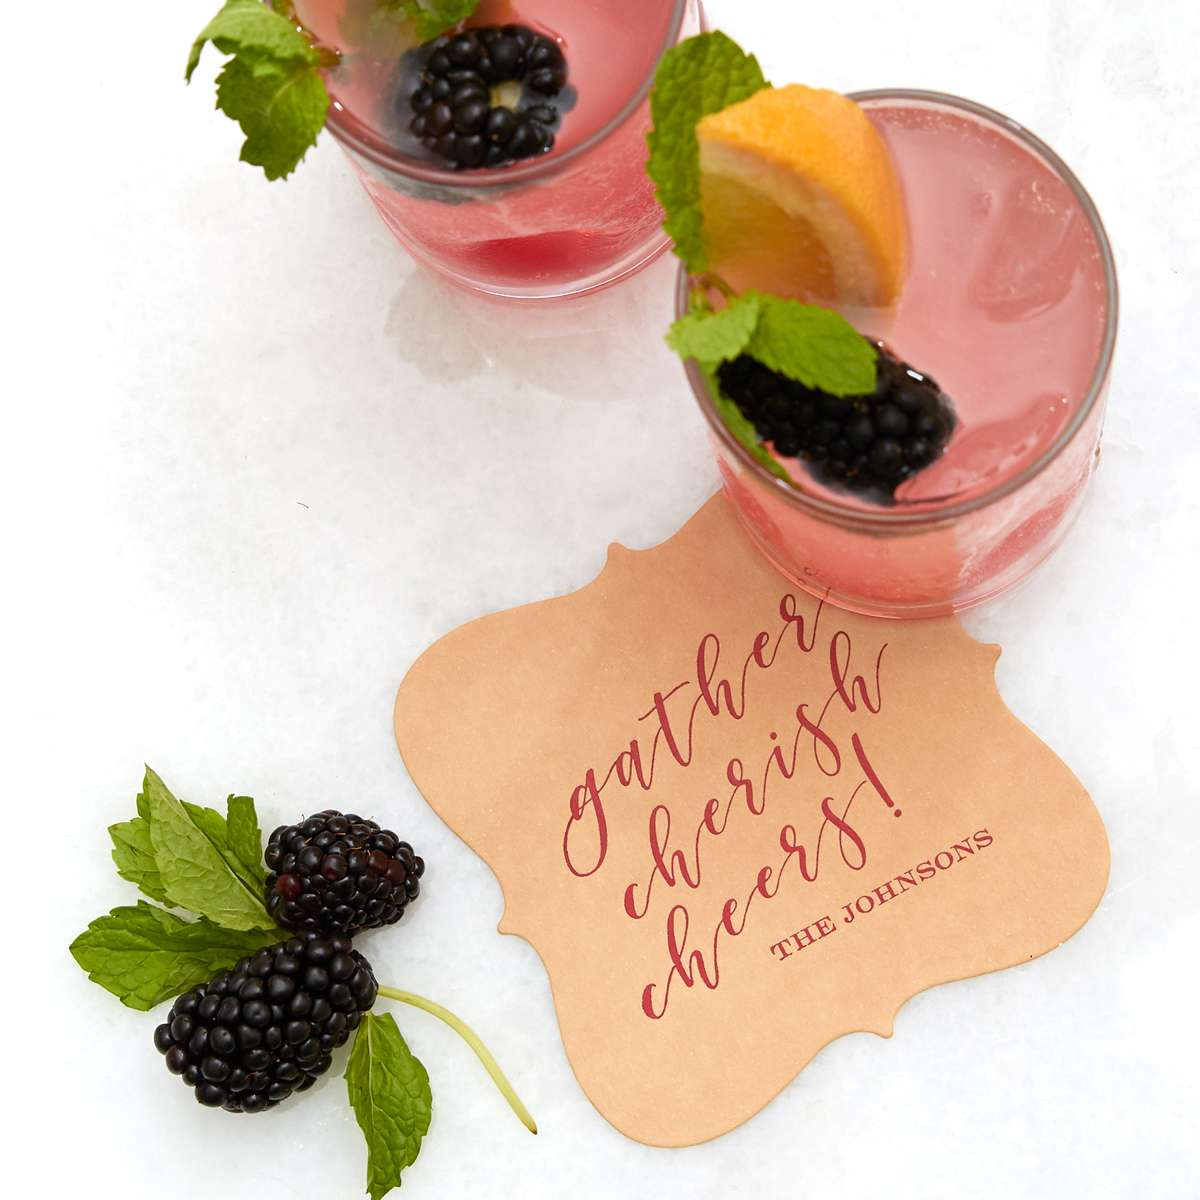 Bubbly Grapefruit Sangria cocktail recipe with custom coaster